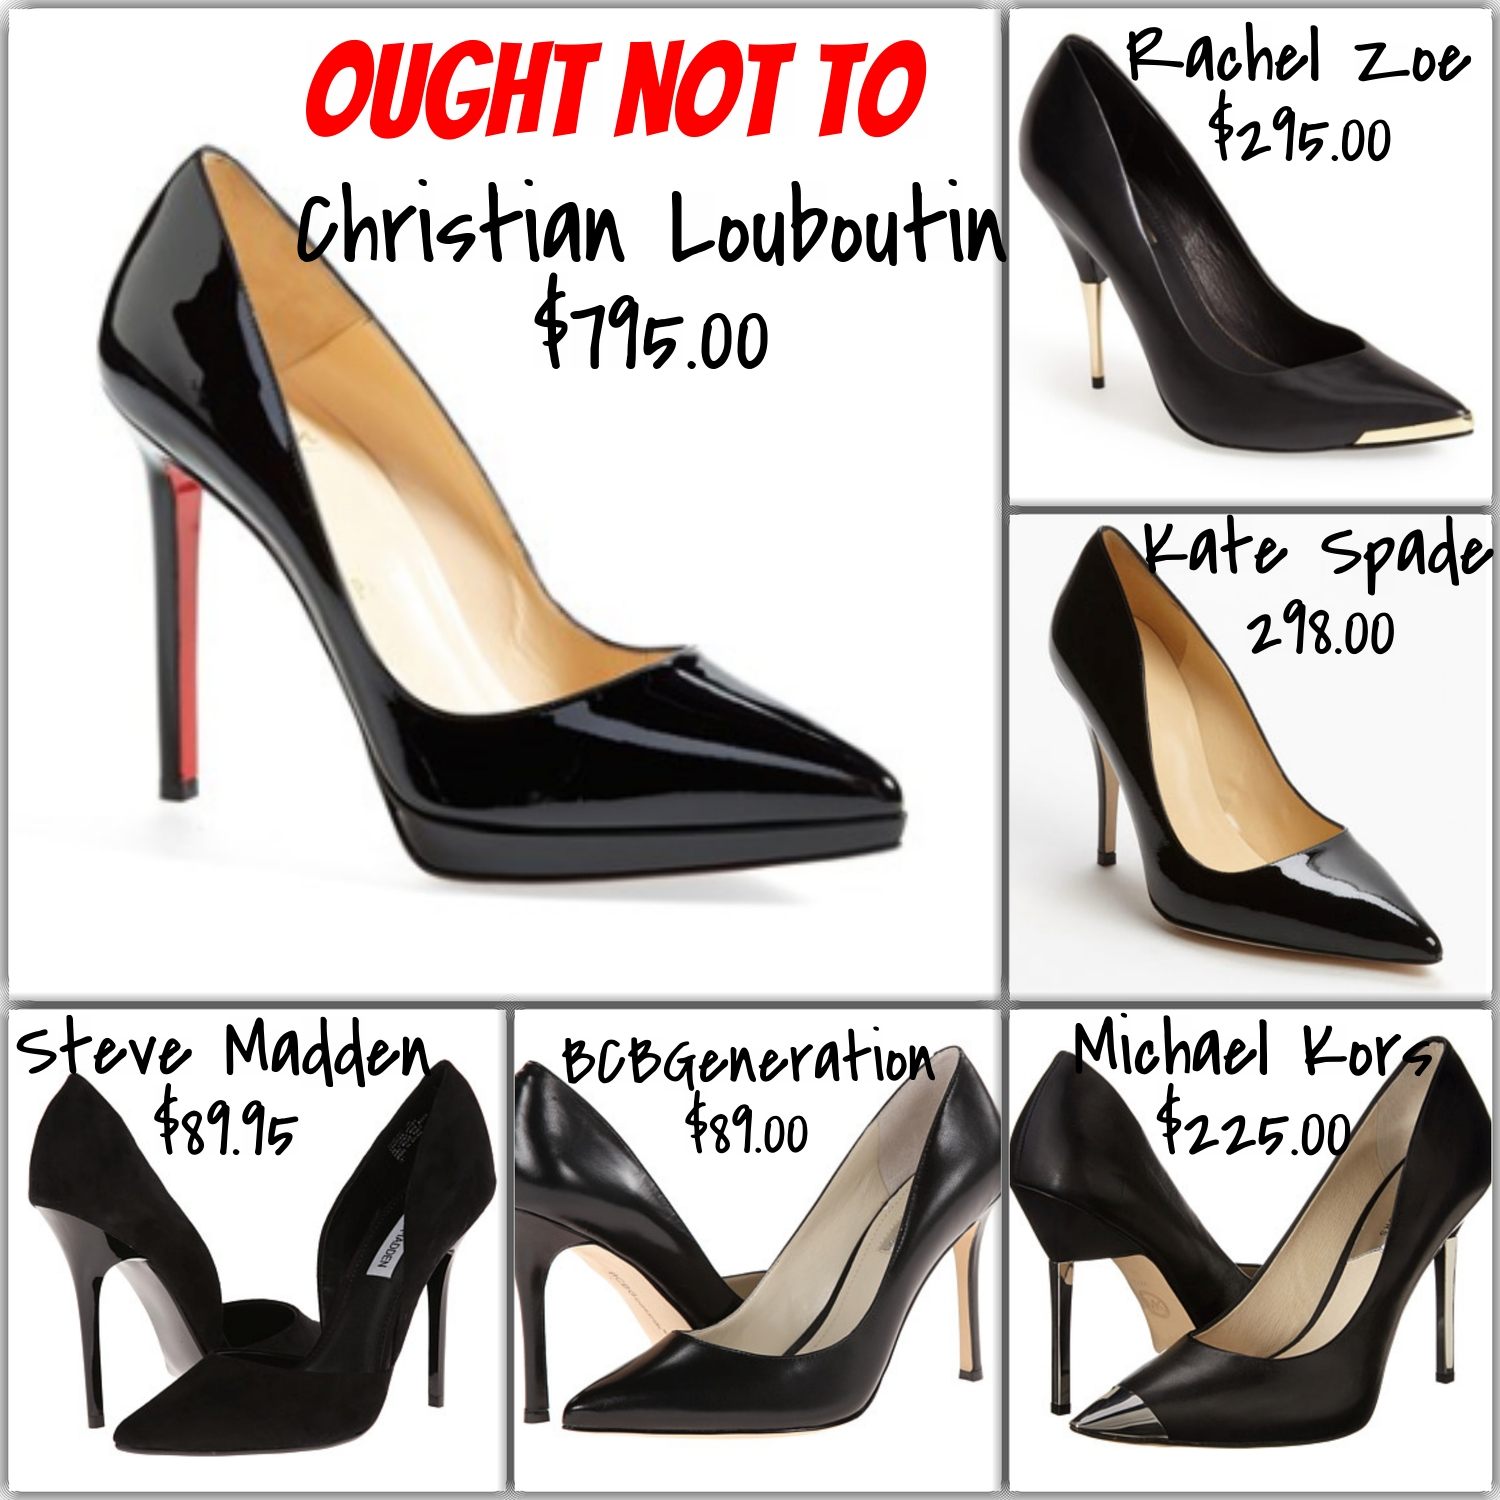 pointed toe black pumps - expensive and affordable options